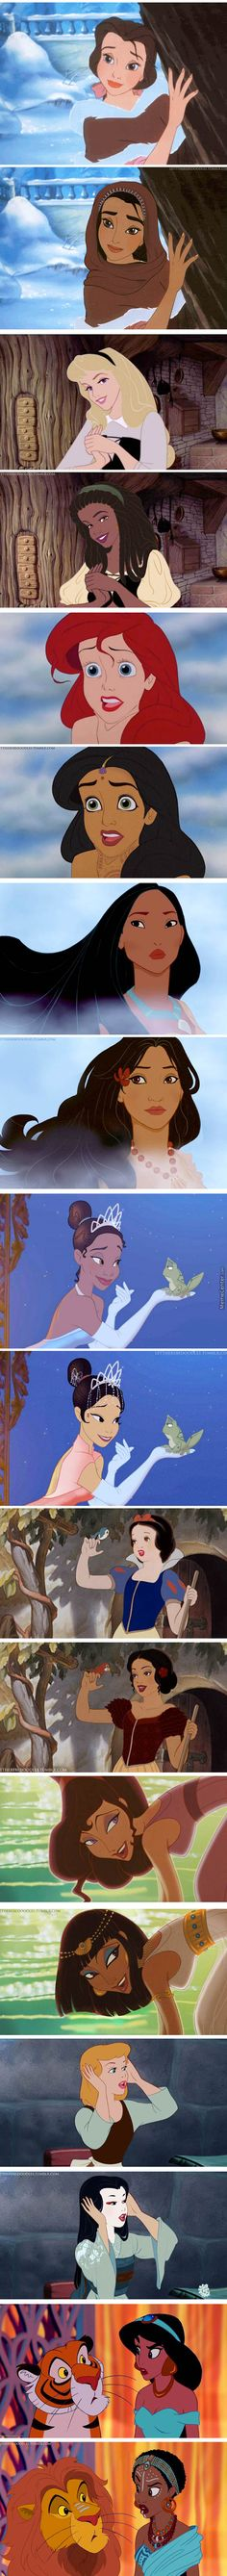 interesting :t Disney princesses in different cultures